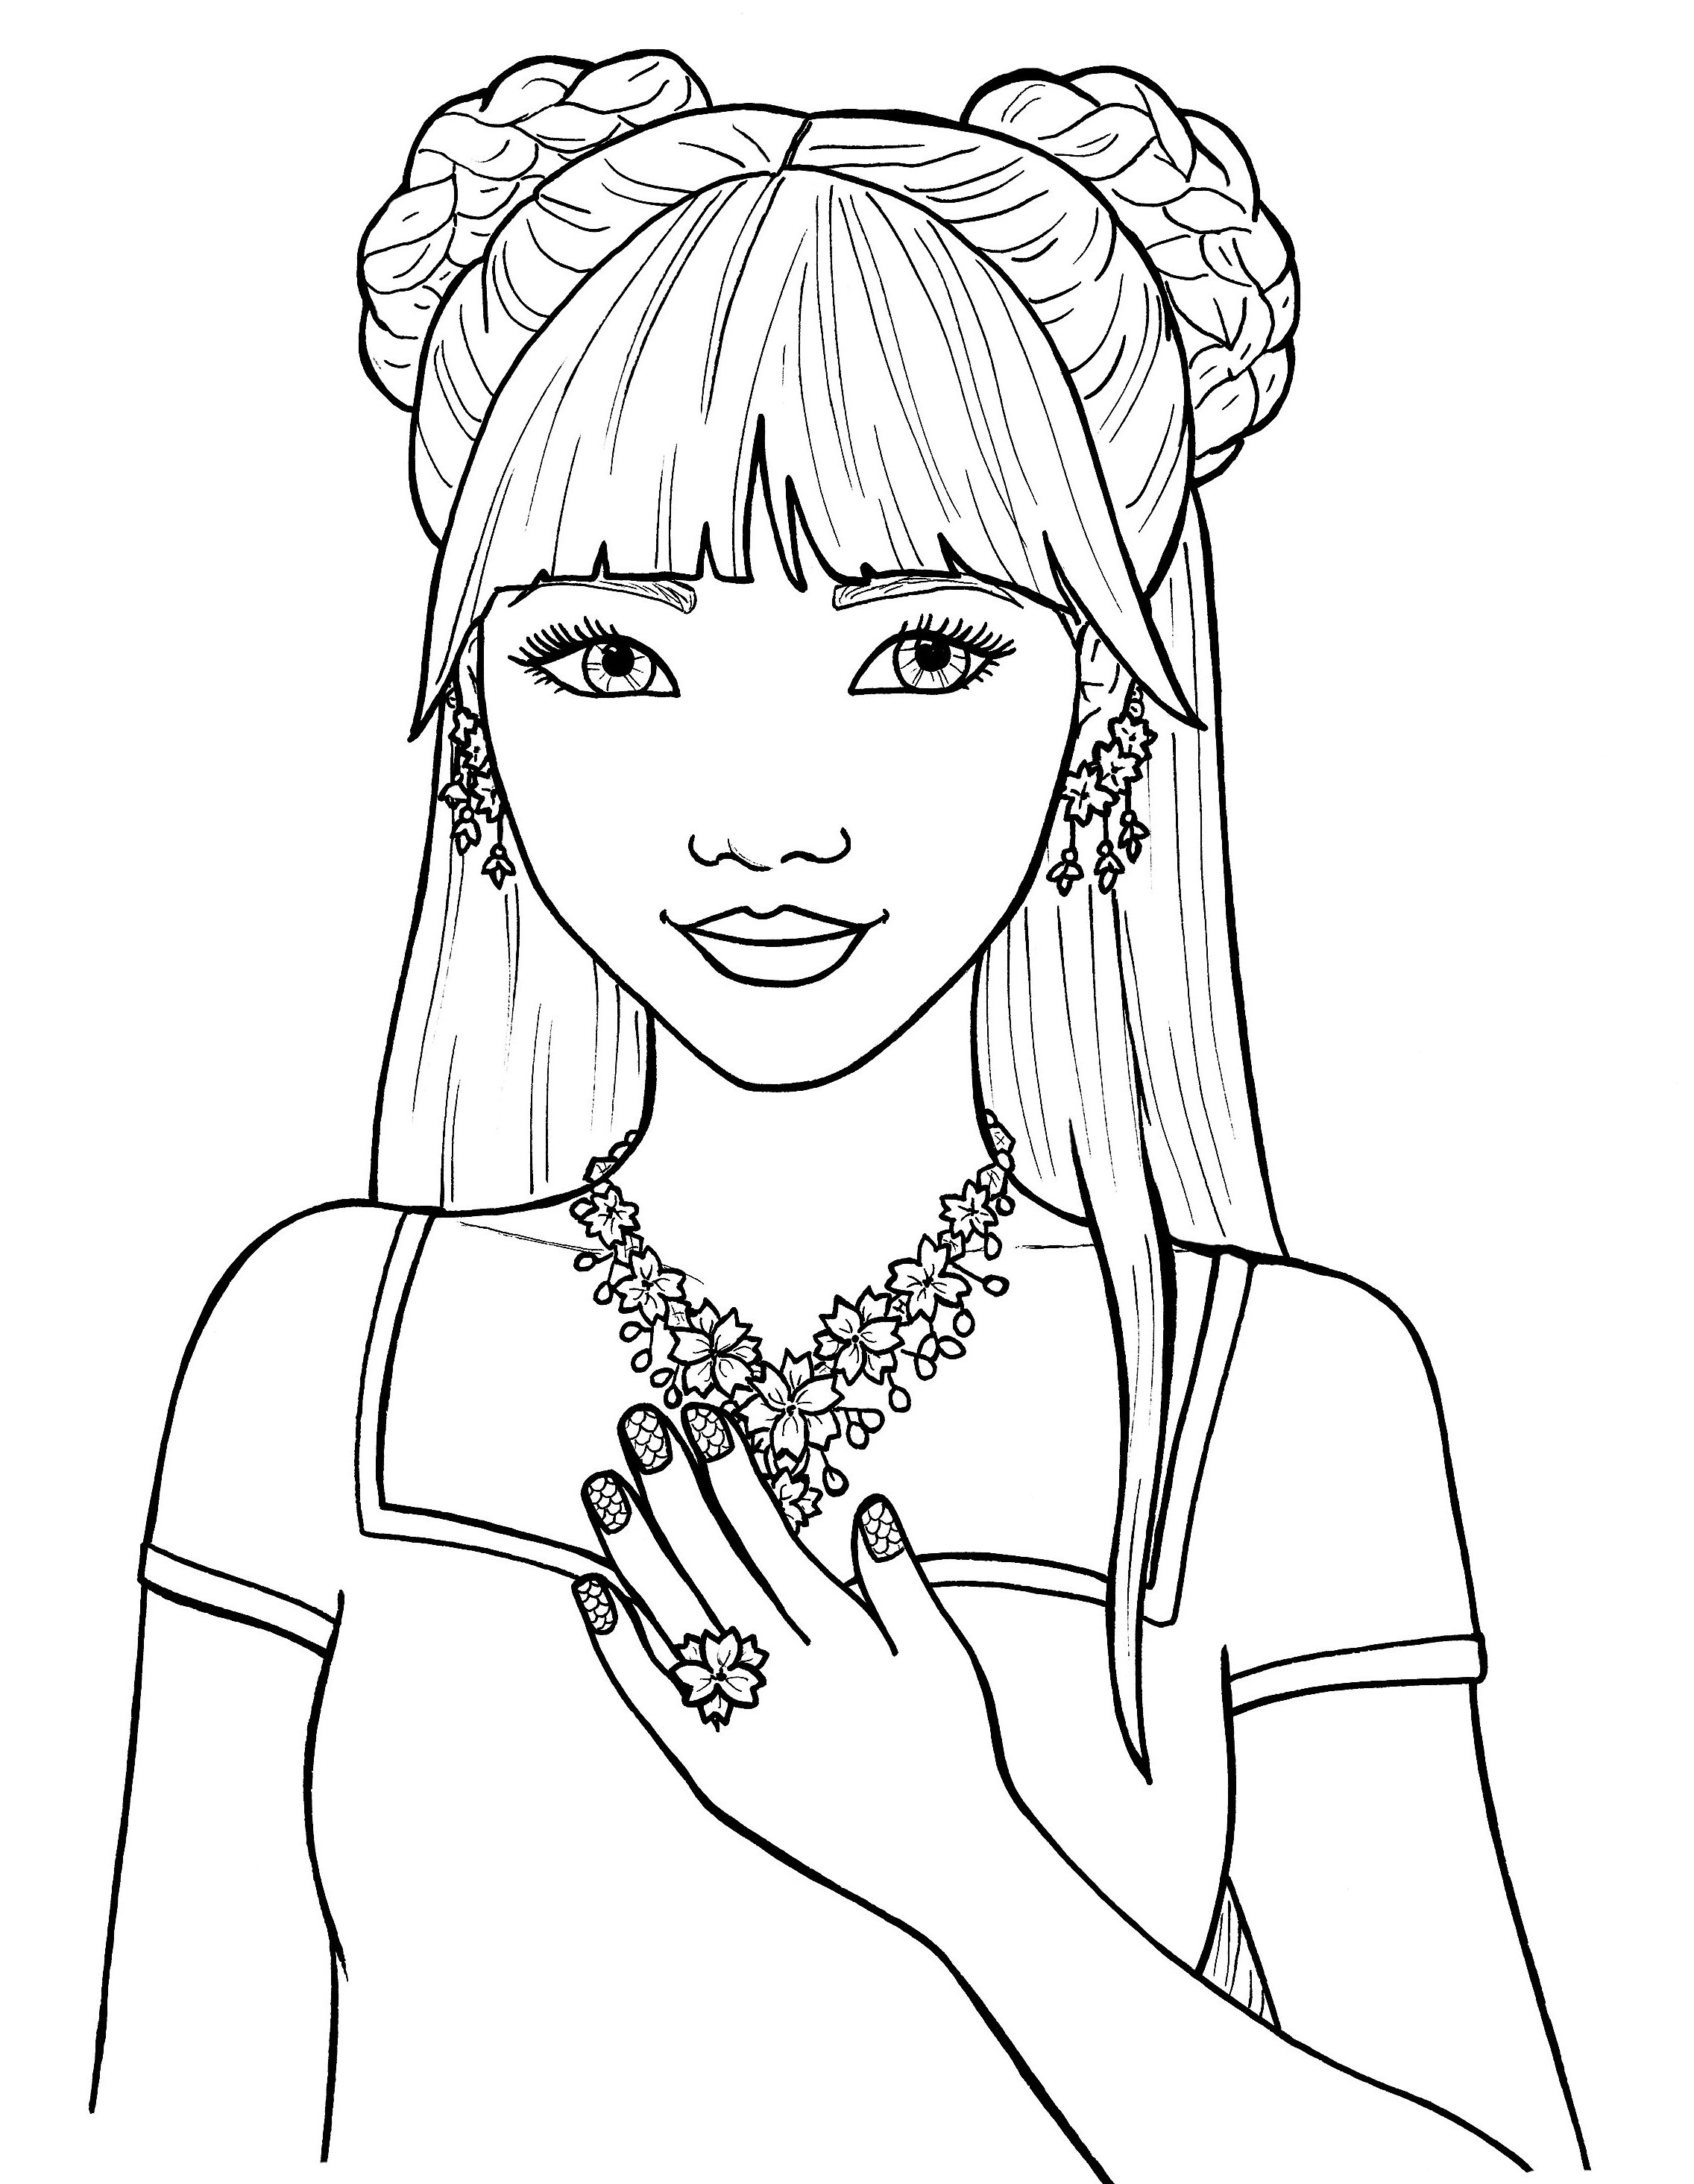 coloring pages of a little girl little girl coloring pages getcoloringpagescom a coloring of girl pages little